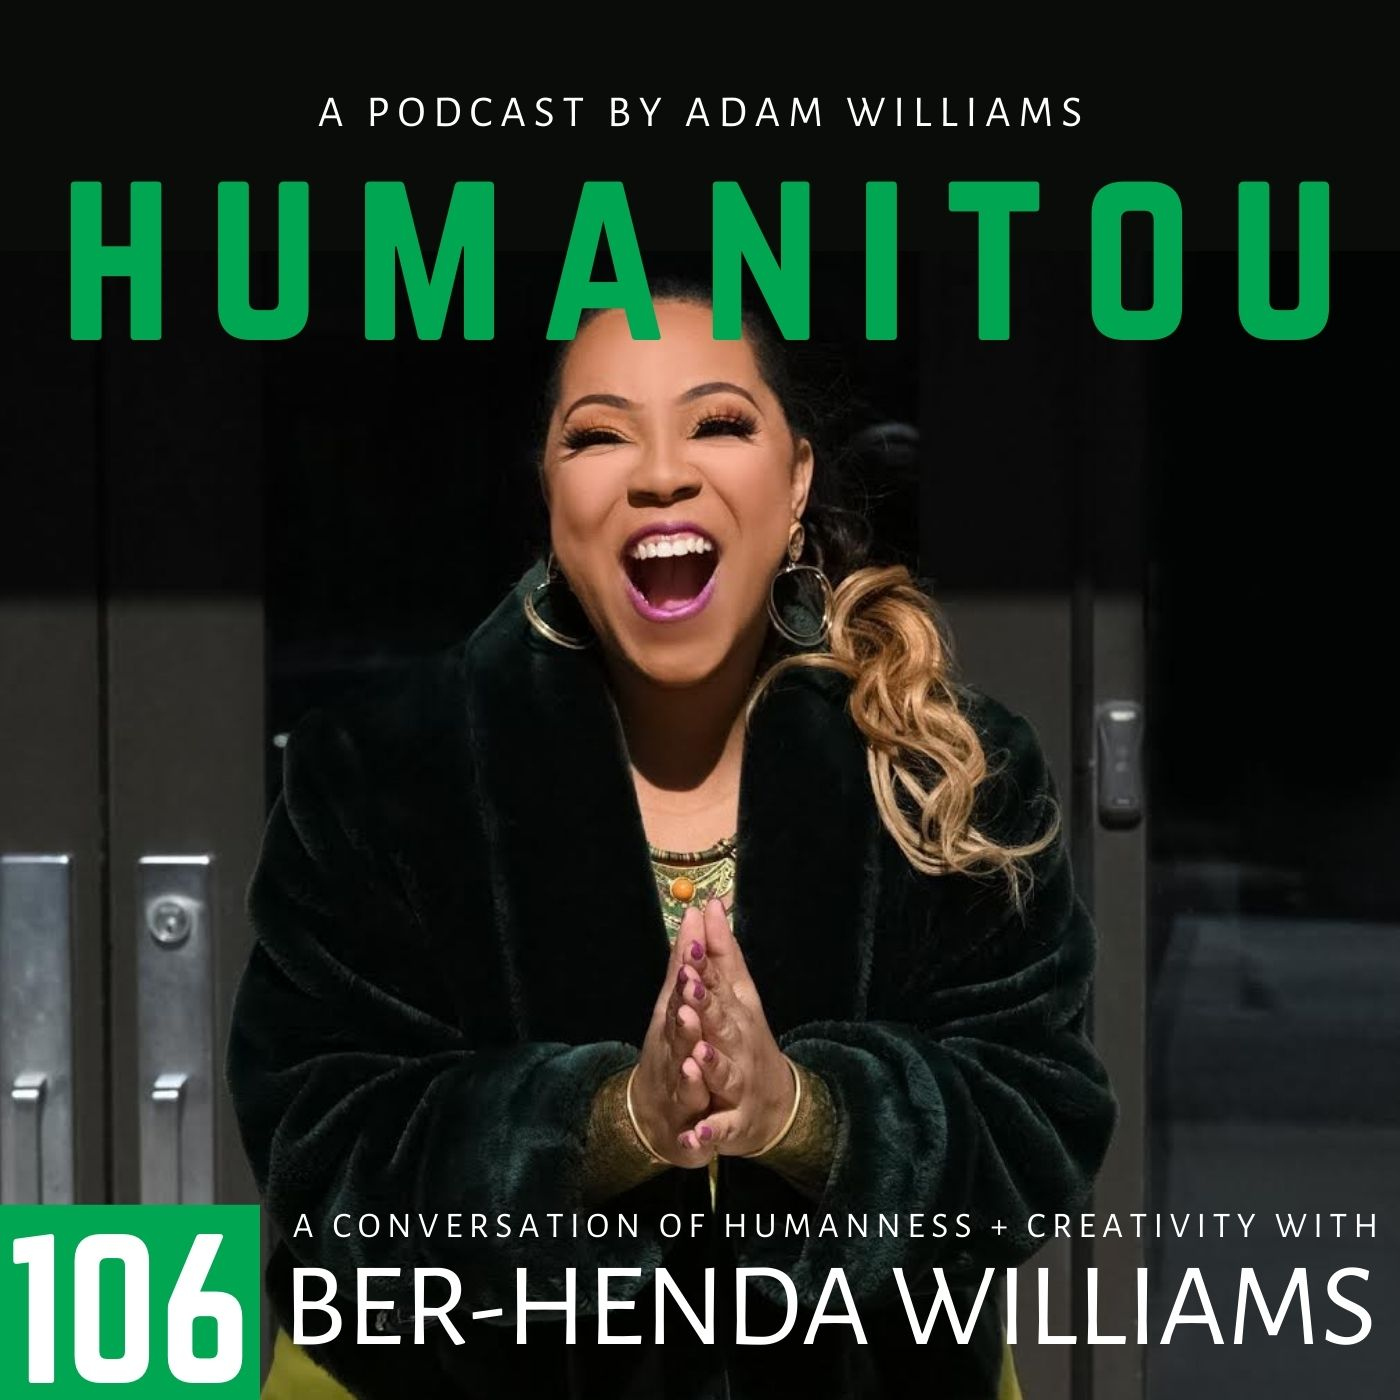 106: Ber-Henda Williams, founder of The Power of Girlhood, on leadership and poetry, curiosity, FOMO and Sheila E.